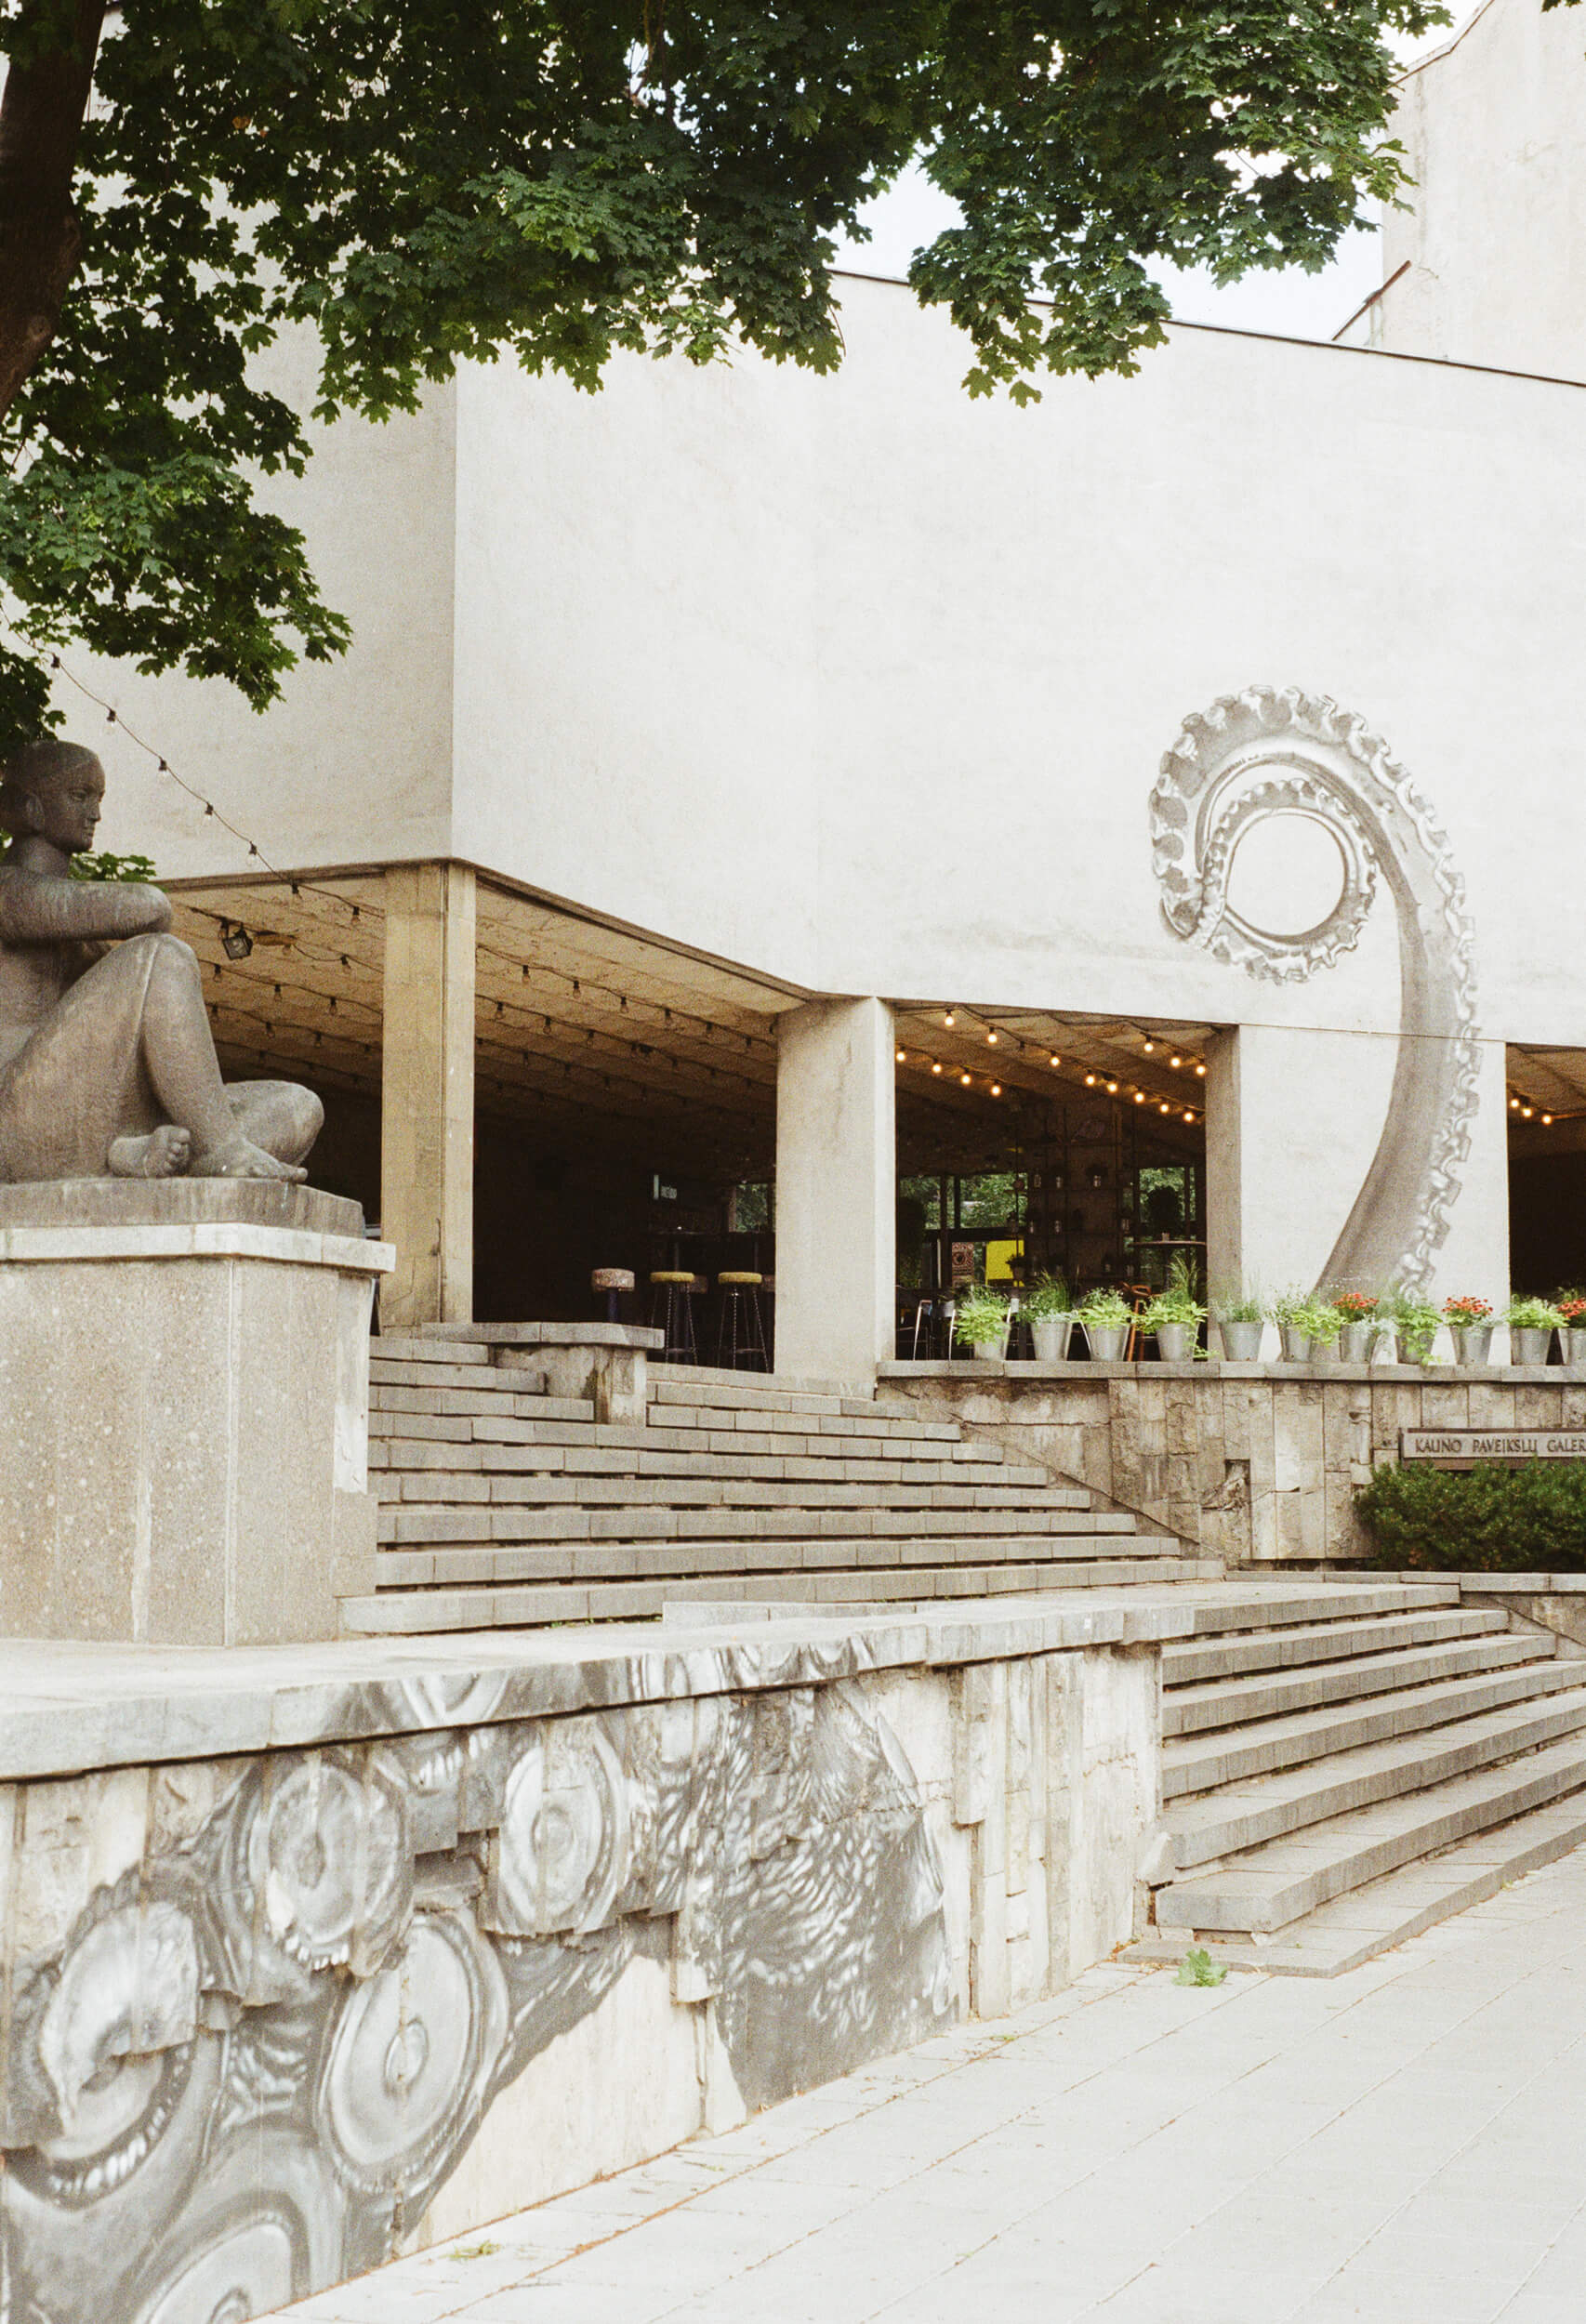 AFTER LEAVING|BEFORE ARRIVING